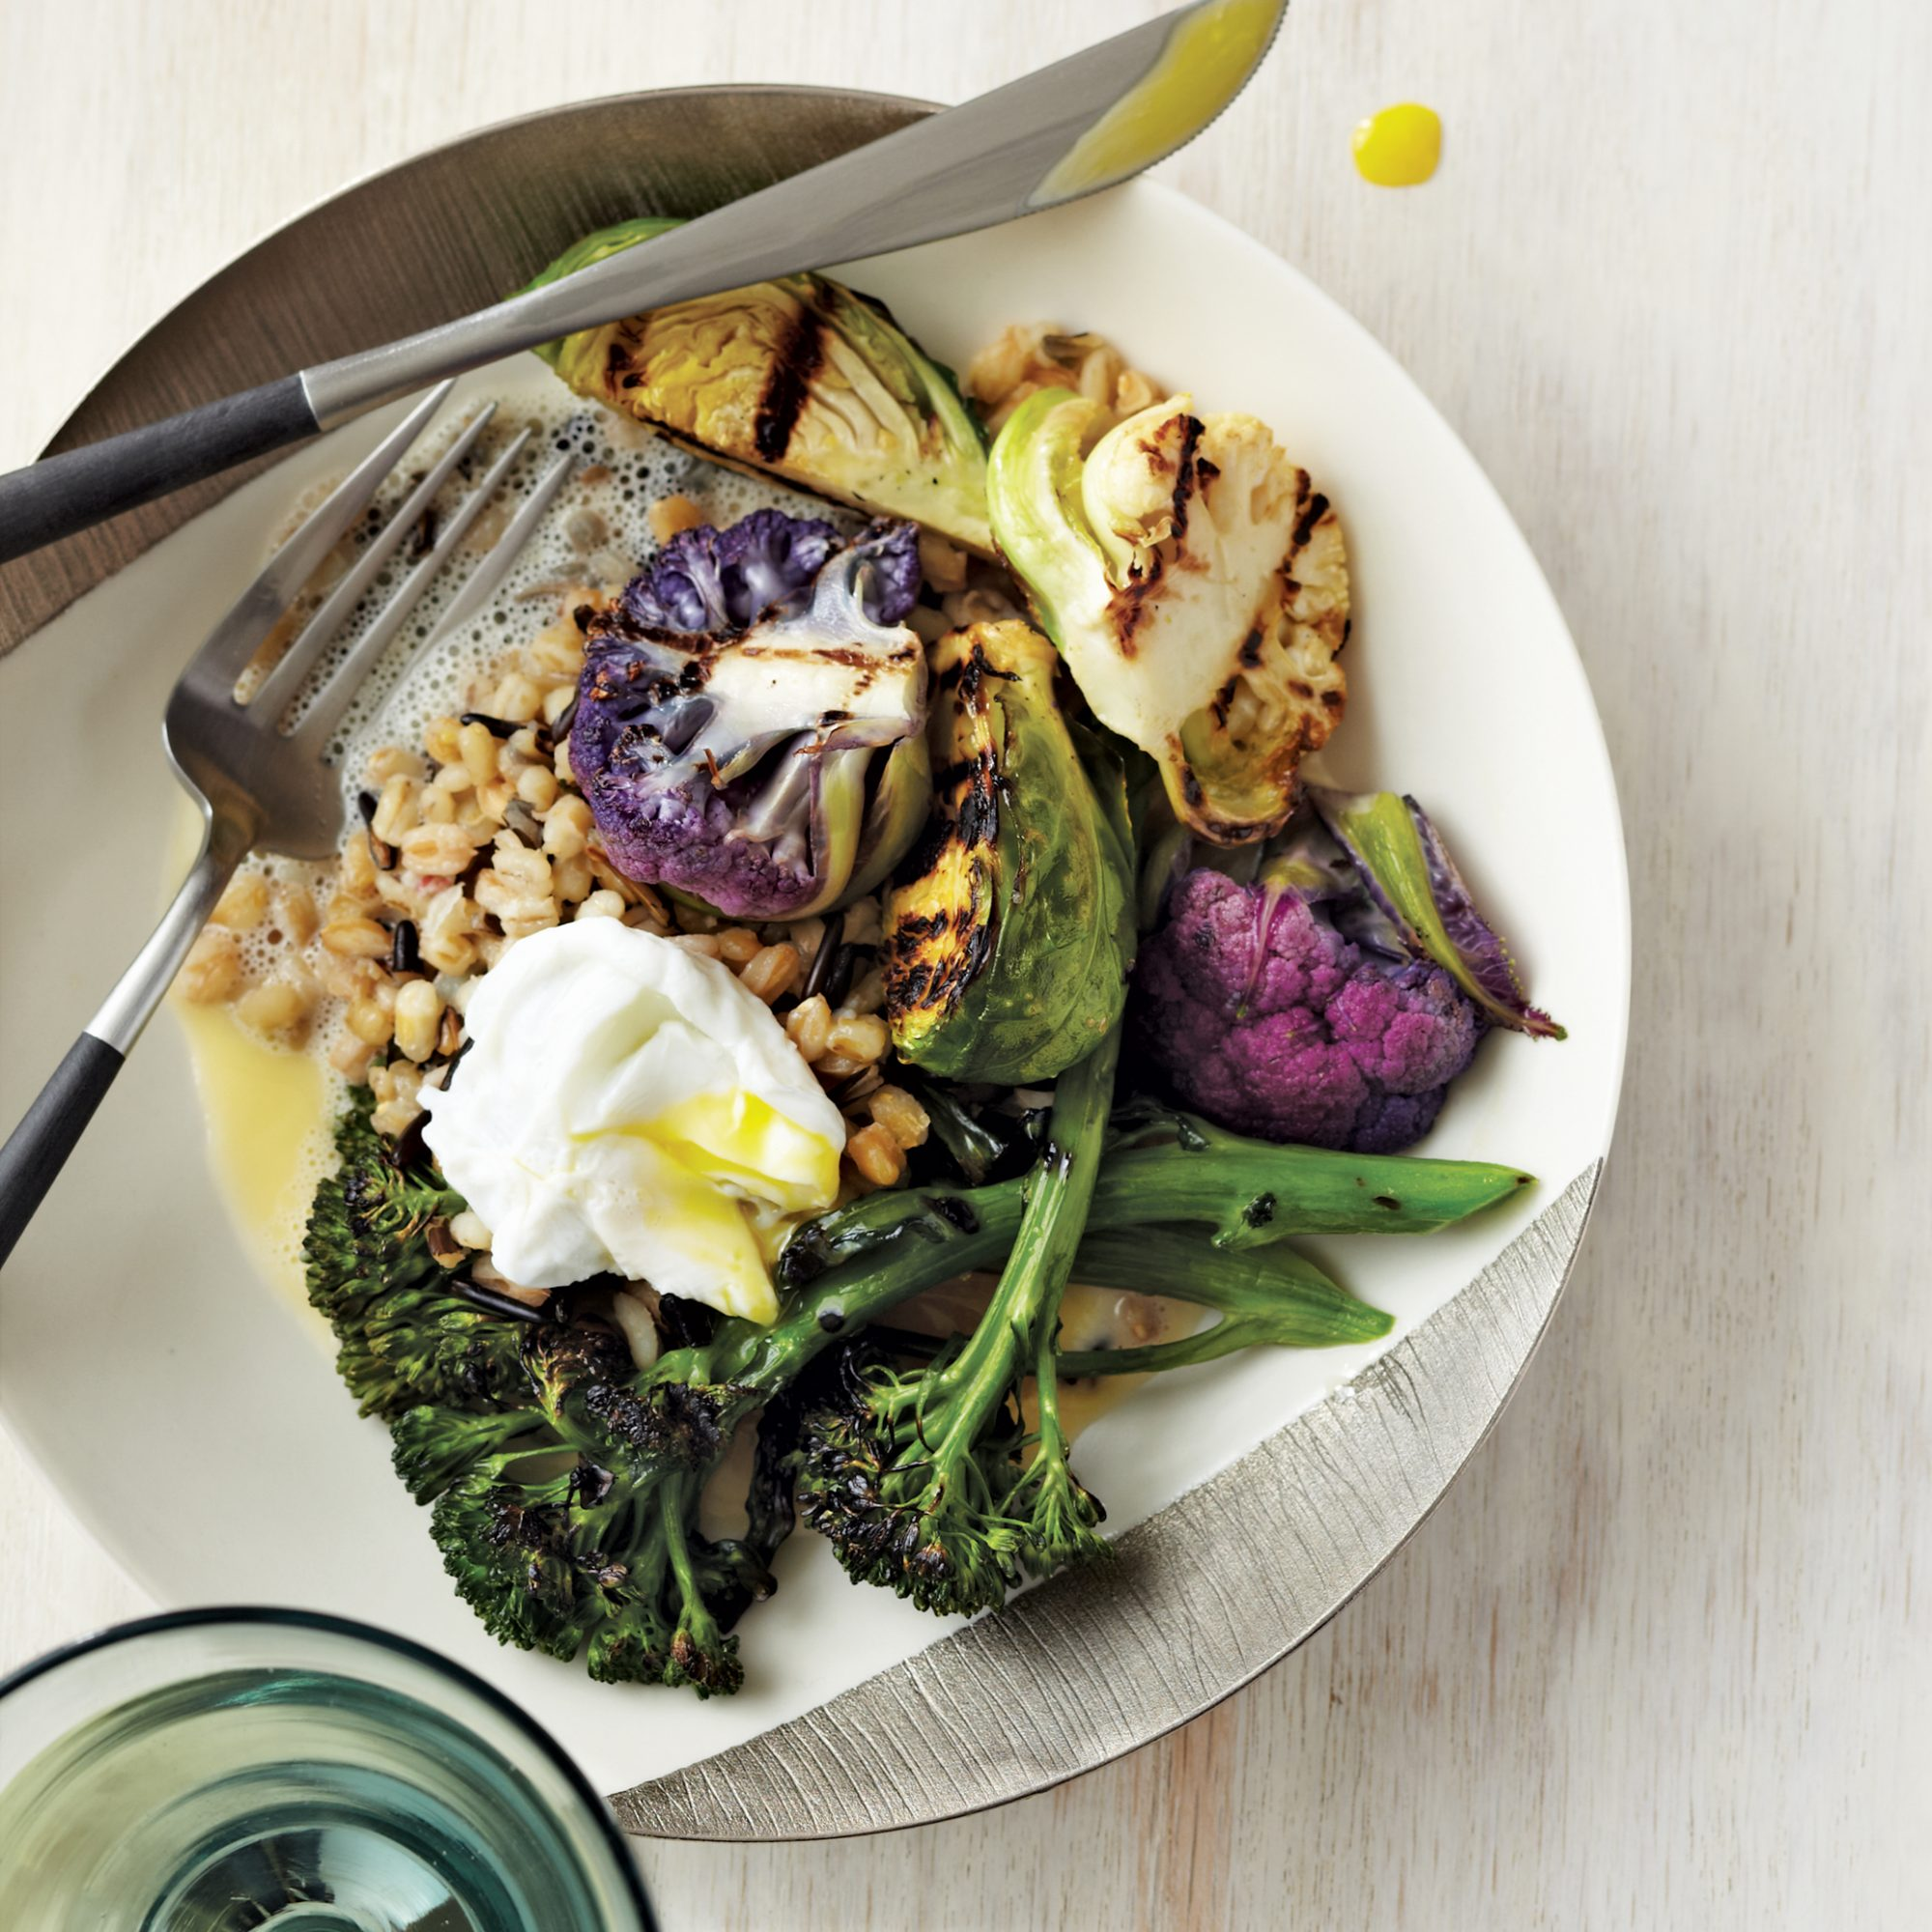 201107-r-Grilled-Brassicas-with-mixed-grains-and-Bonito-Broth.jpg